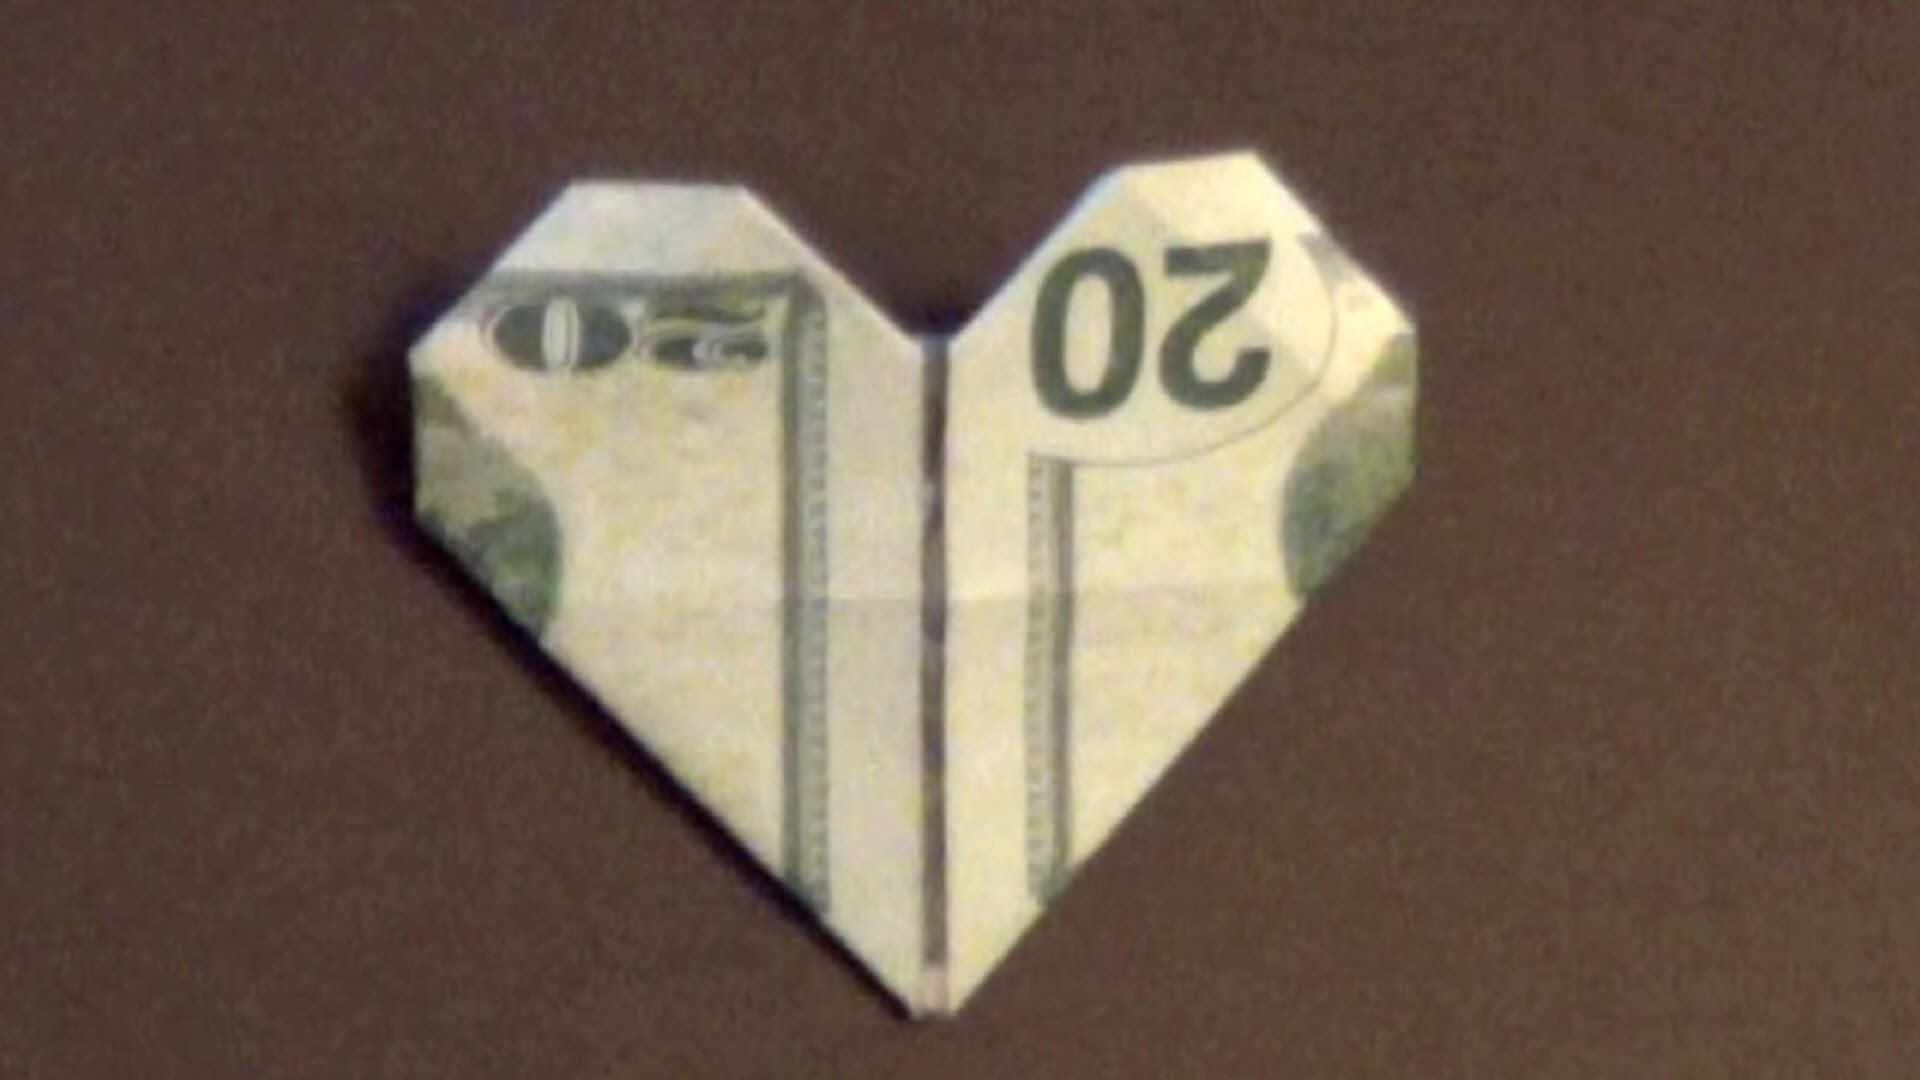 Dollar origami heart e thought i found it on pinterest dollar origami heart how to make a dollar heart easy peasy directions jeuxipadfo Image collections